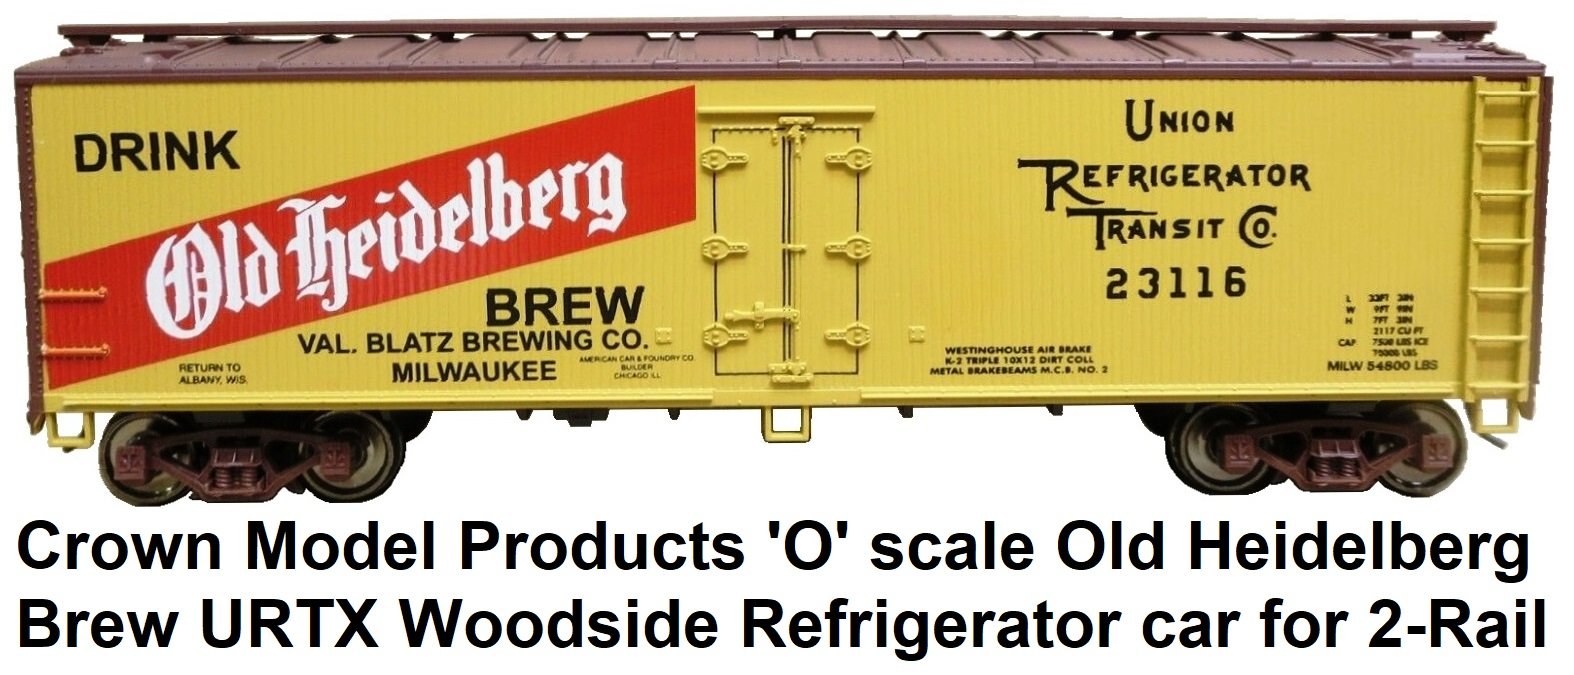 Crown Model Products 'O' scale Old Heidelberg Brew URTX Woodside Refrigerator car for 2-Rail